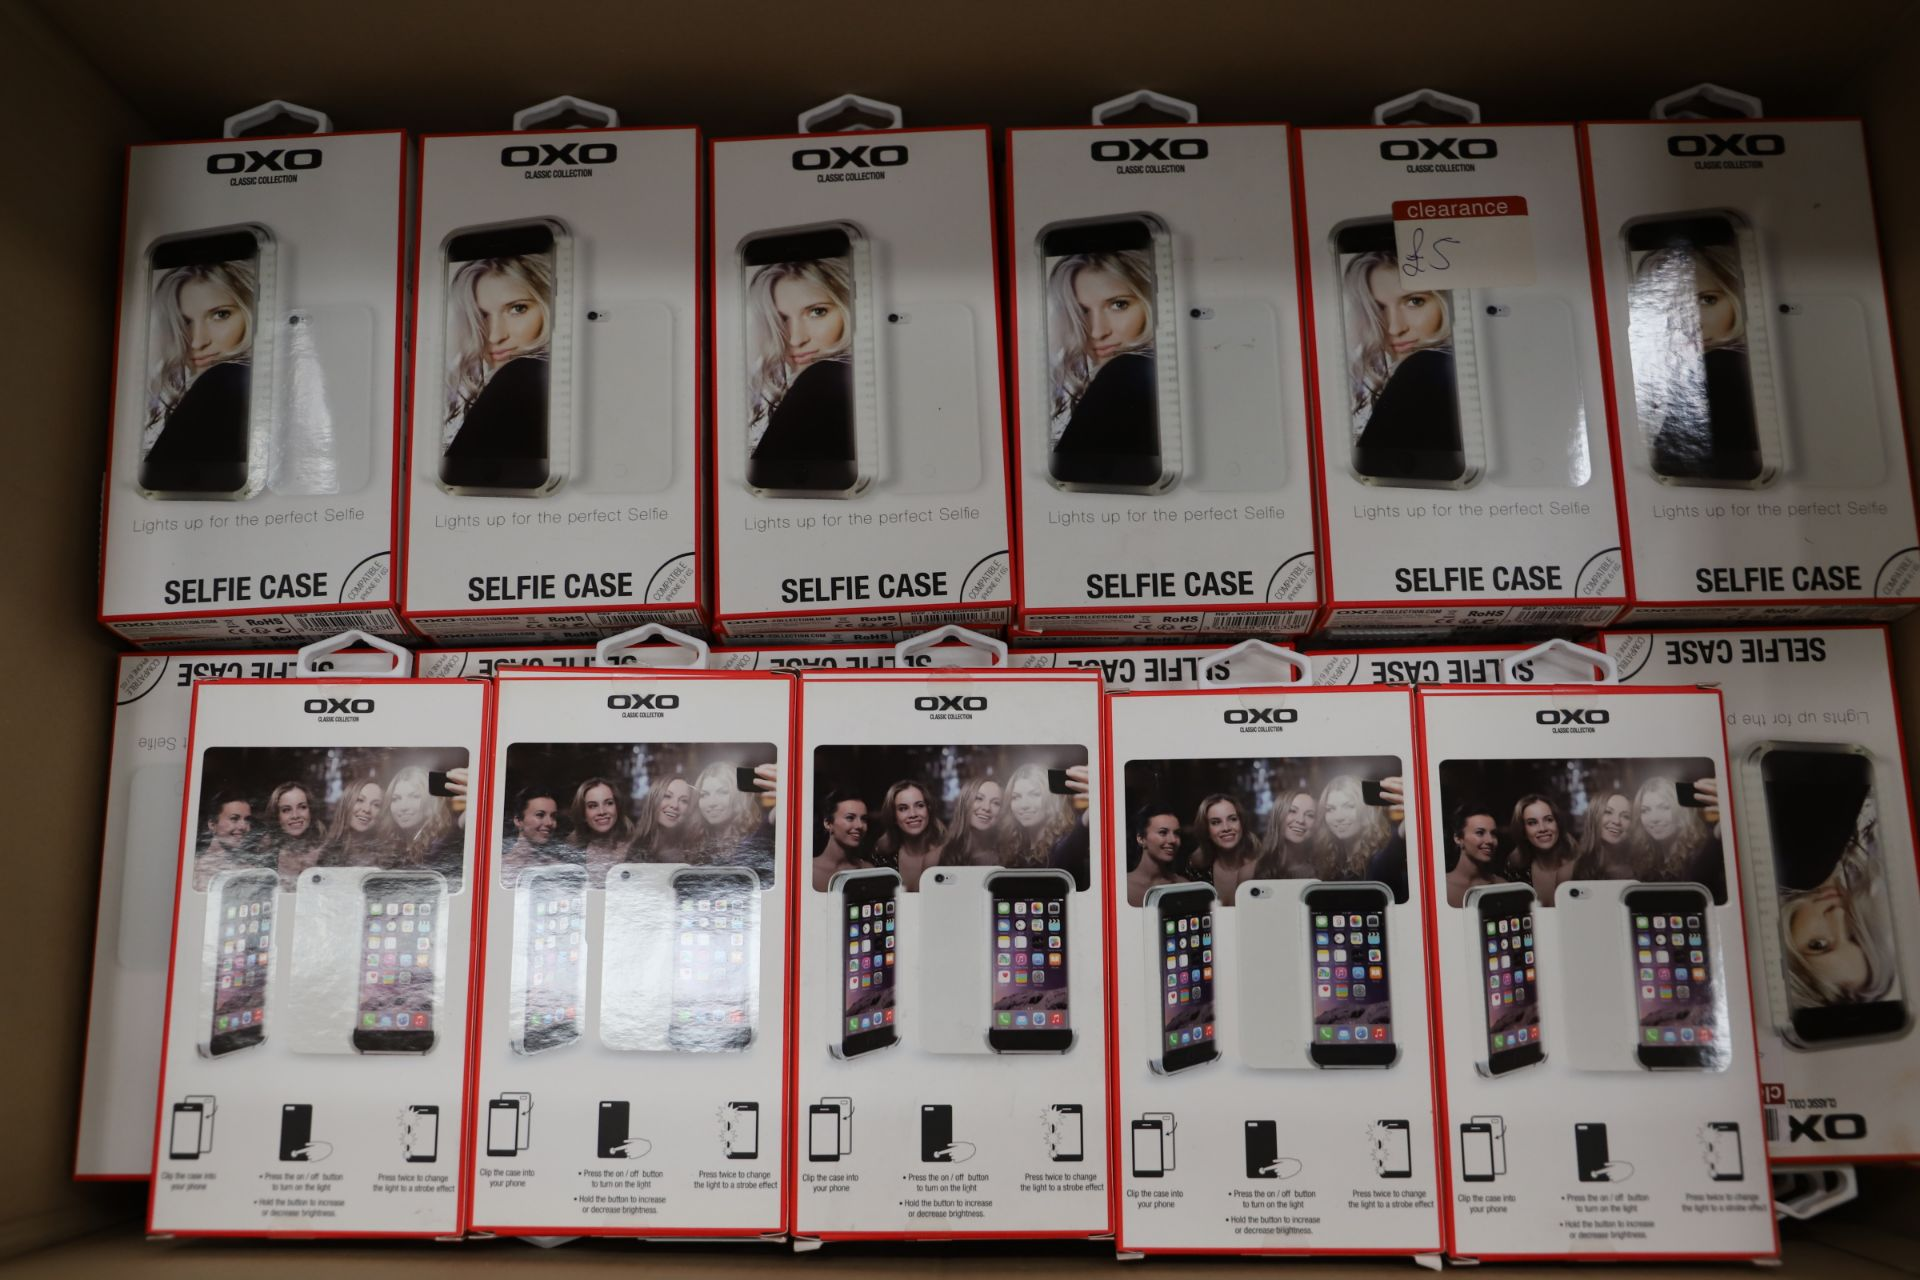 Lot 17 - *No Reserve* 119 LEDlightup selfie case for Iphone white, RRP £1785.00